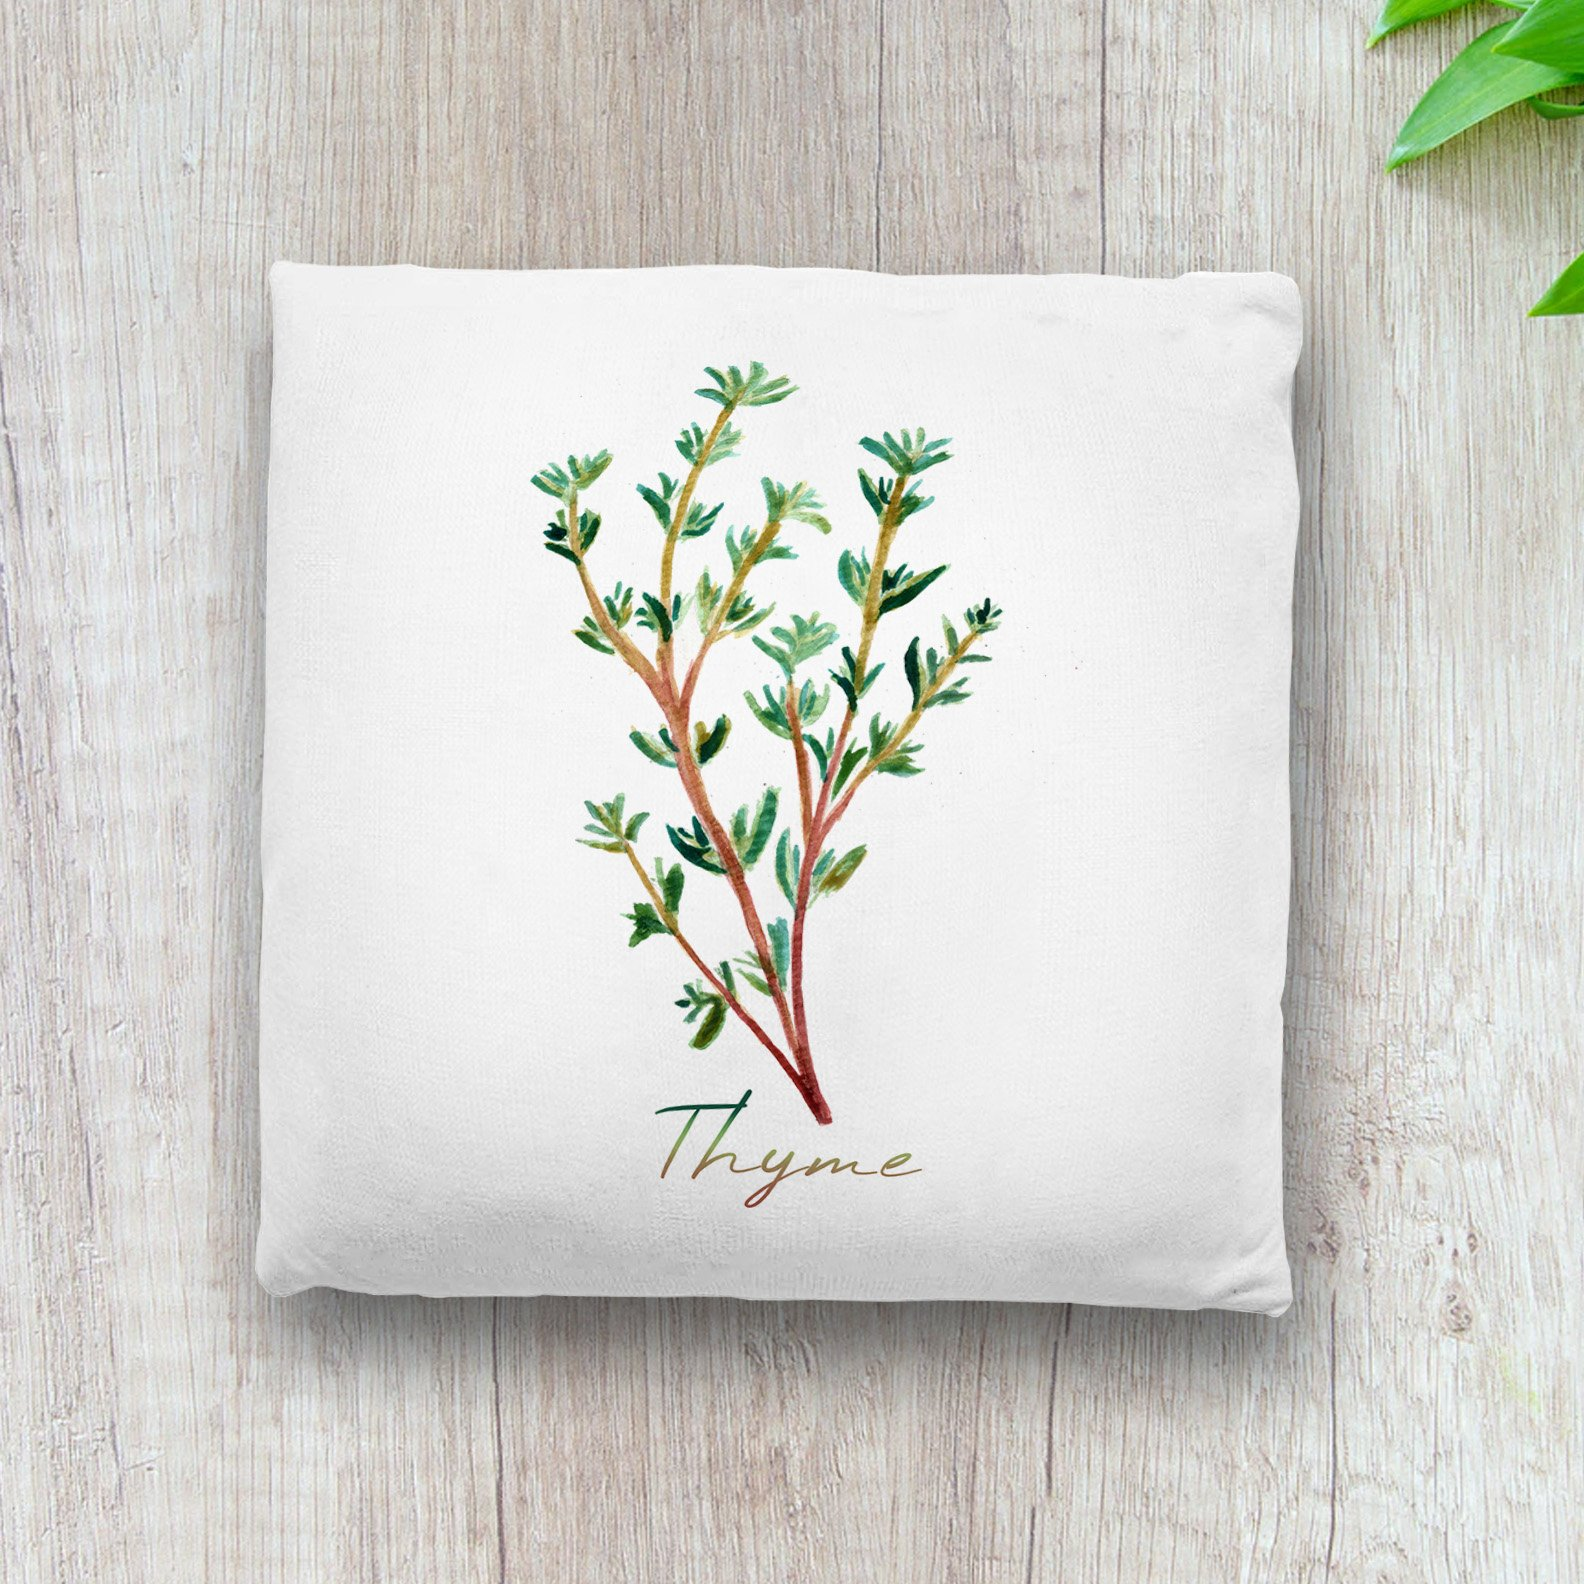 6-thyme-throw-pillow-herb-botanical-watercolor-painting